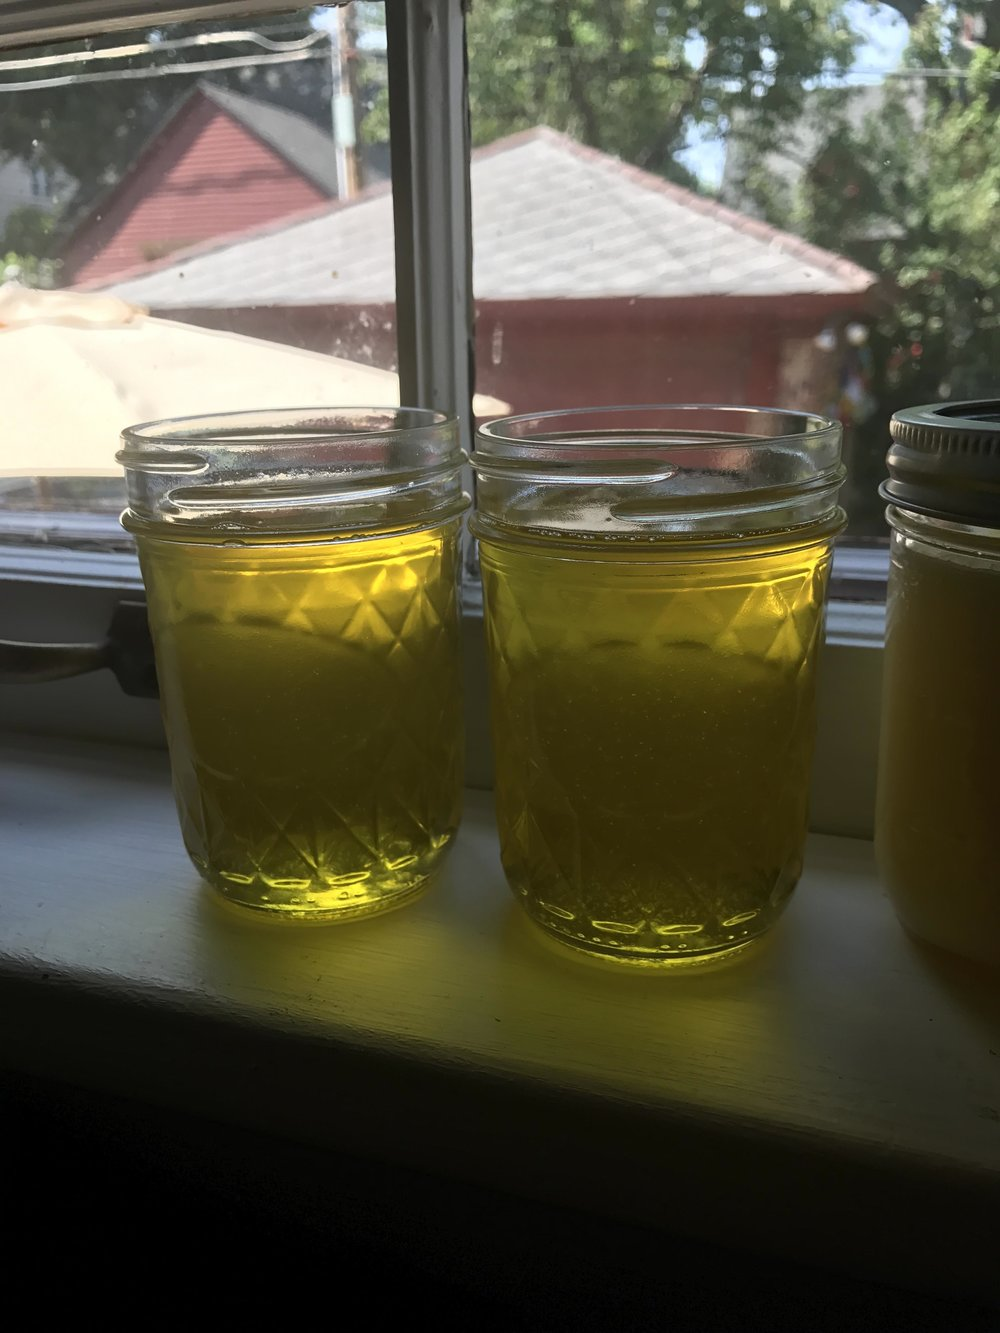 Ghee cooling on the window sill